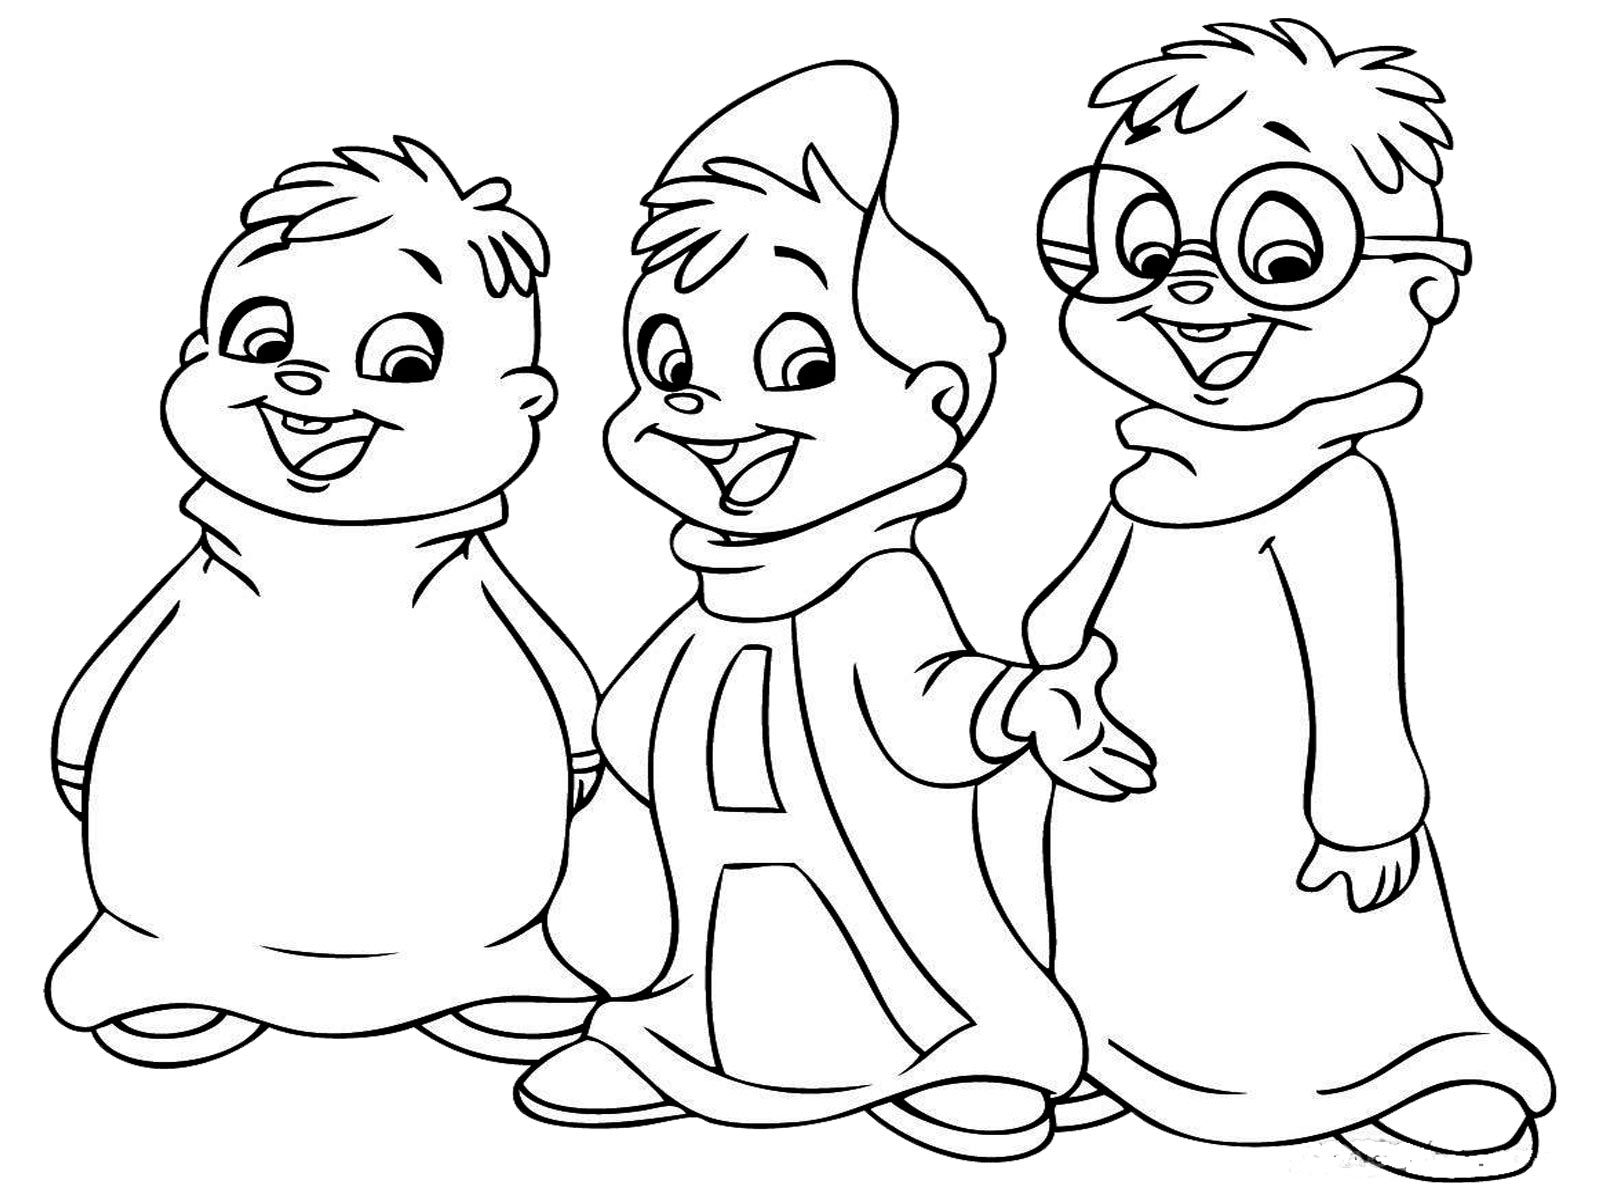 Coloring sheet for toddlers - Printable Coloring Pages For Boys Alvin And The Chipmunks Coloring Pages Realistic Coloring Pages